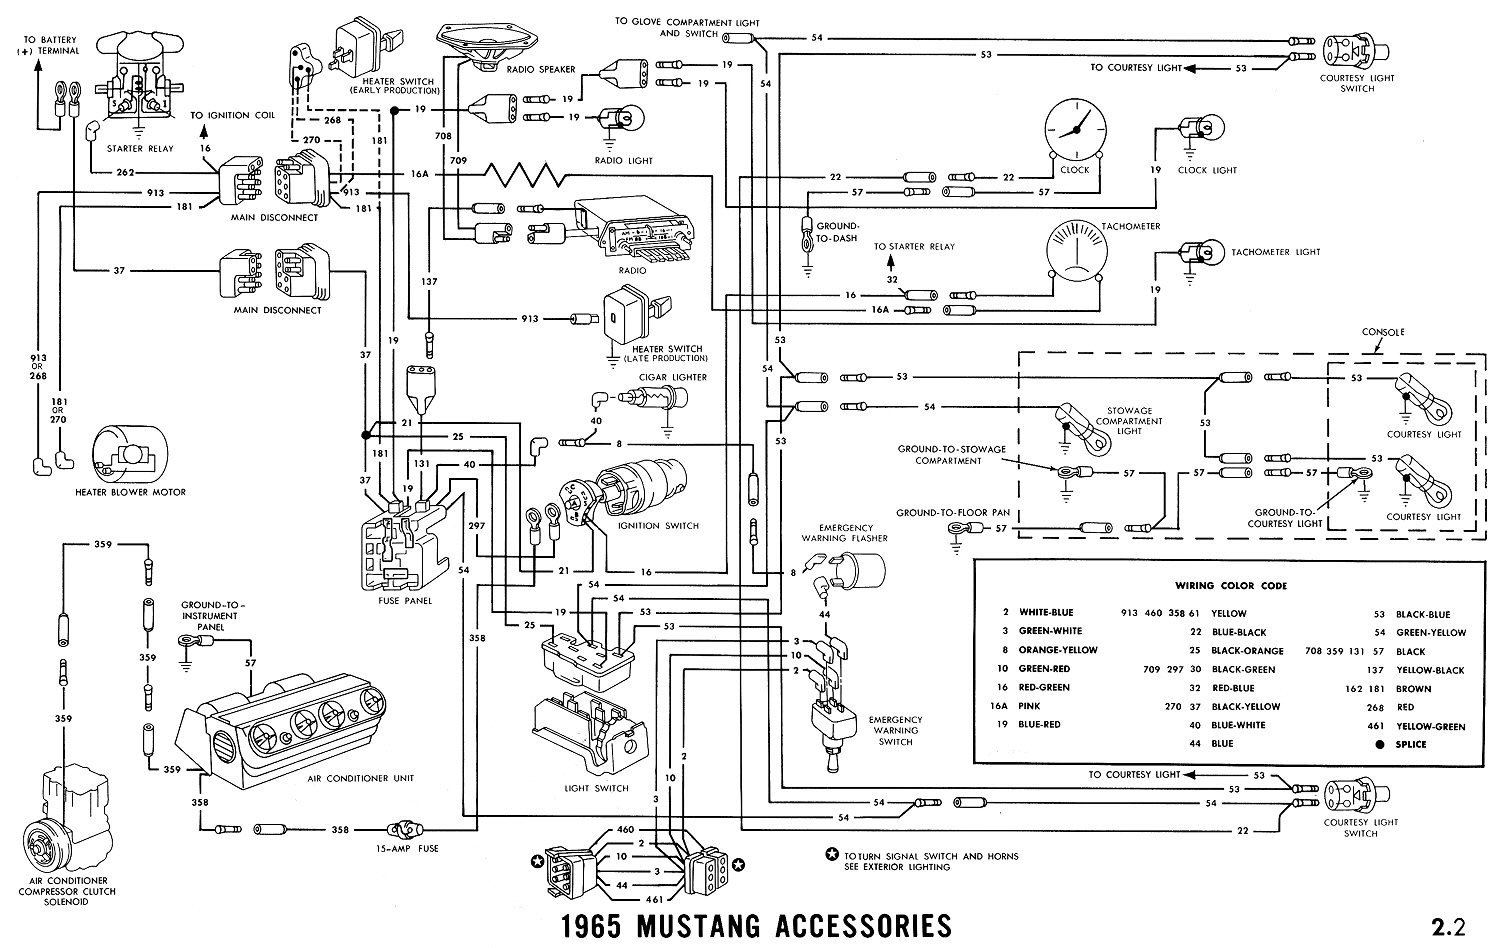 1965i 1965 mustang wiring diagrams average joe restoration mustang wiring harness diagram at bayanpartner.co